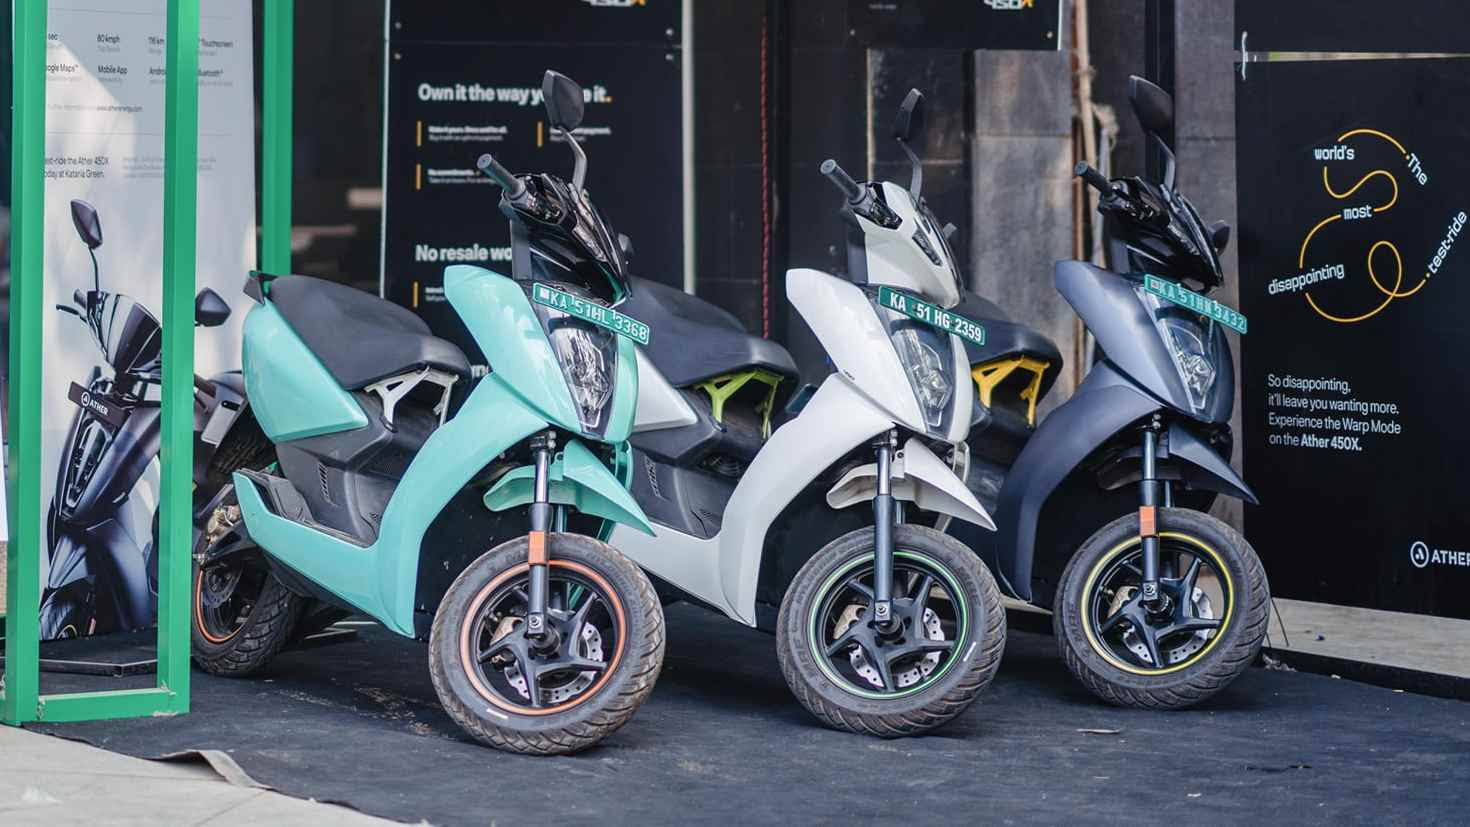 Prices of Ather Energy's 450 Plus and 450X scooters in Gujarat have dropped by Rs 20,000. Image: Ather Energy